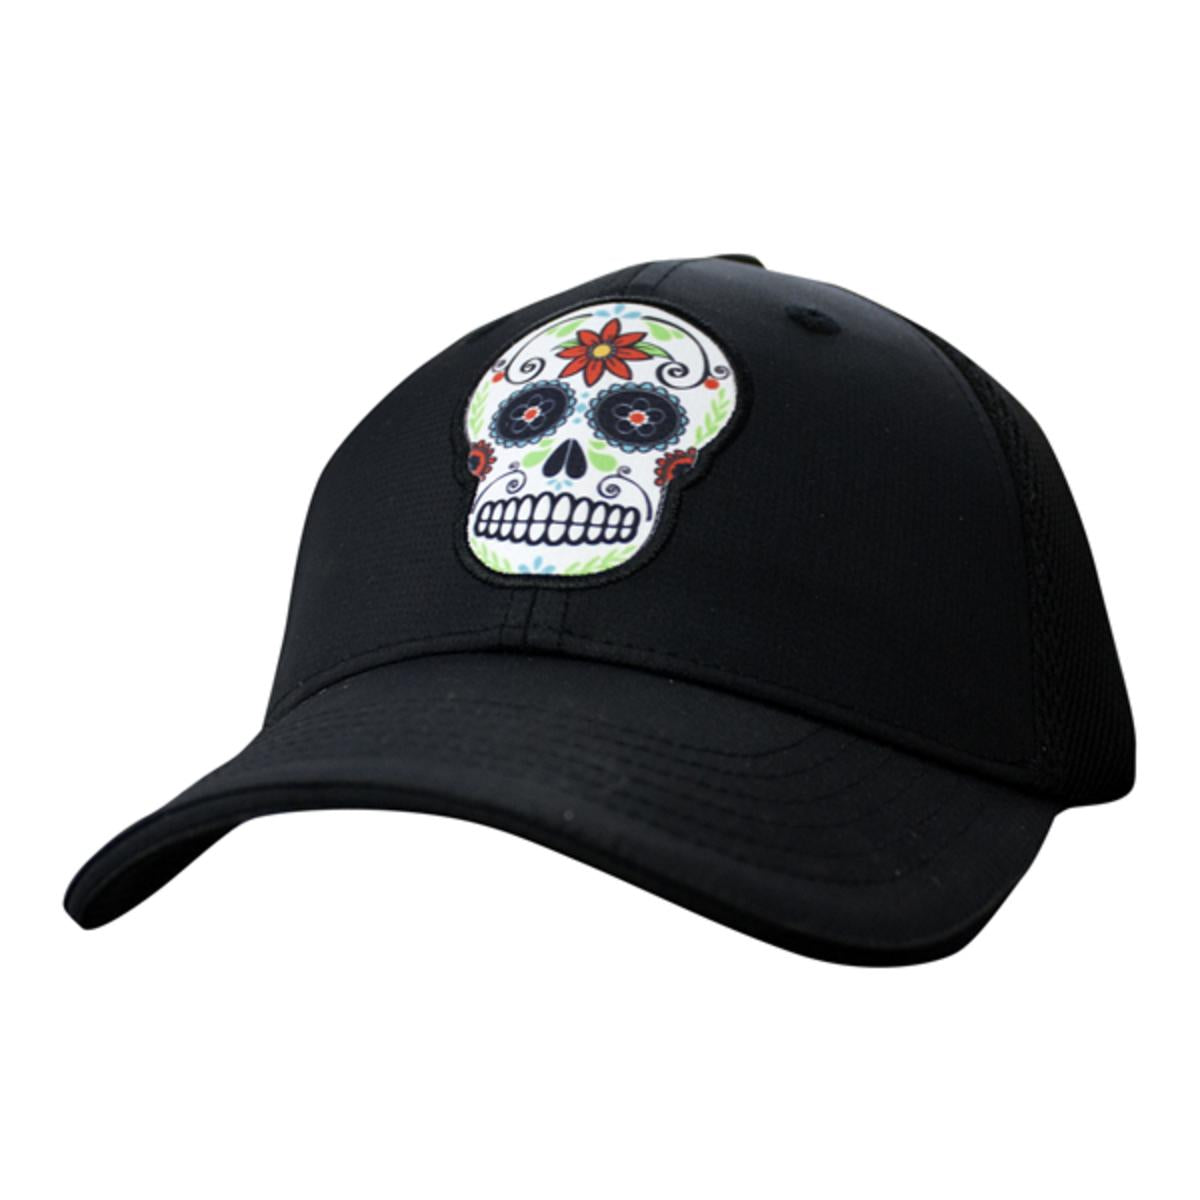 89aea5892b0 Headsweats Trucker Hat - Black Sugar Skulls – Adventure Outfitter